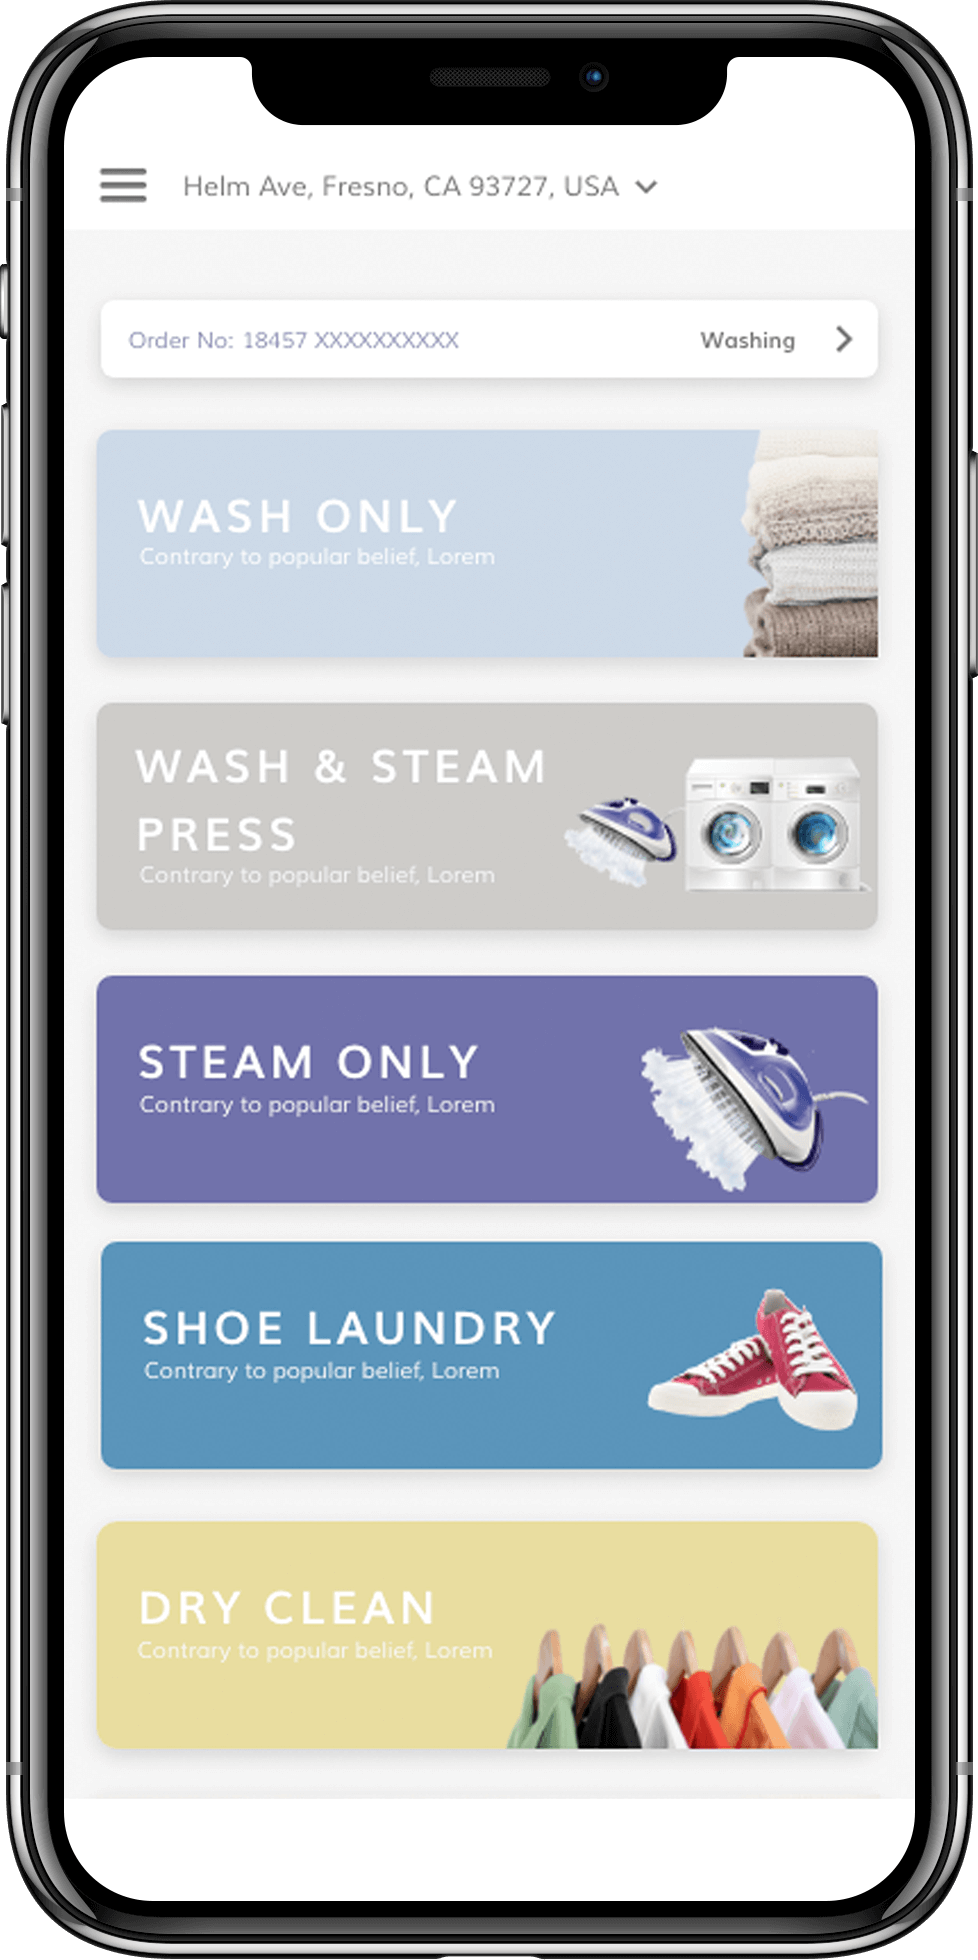 Uber for Laundry & On-Demand Laundry